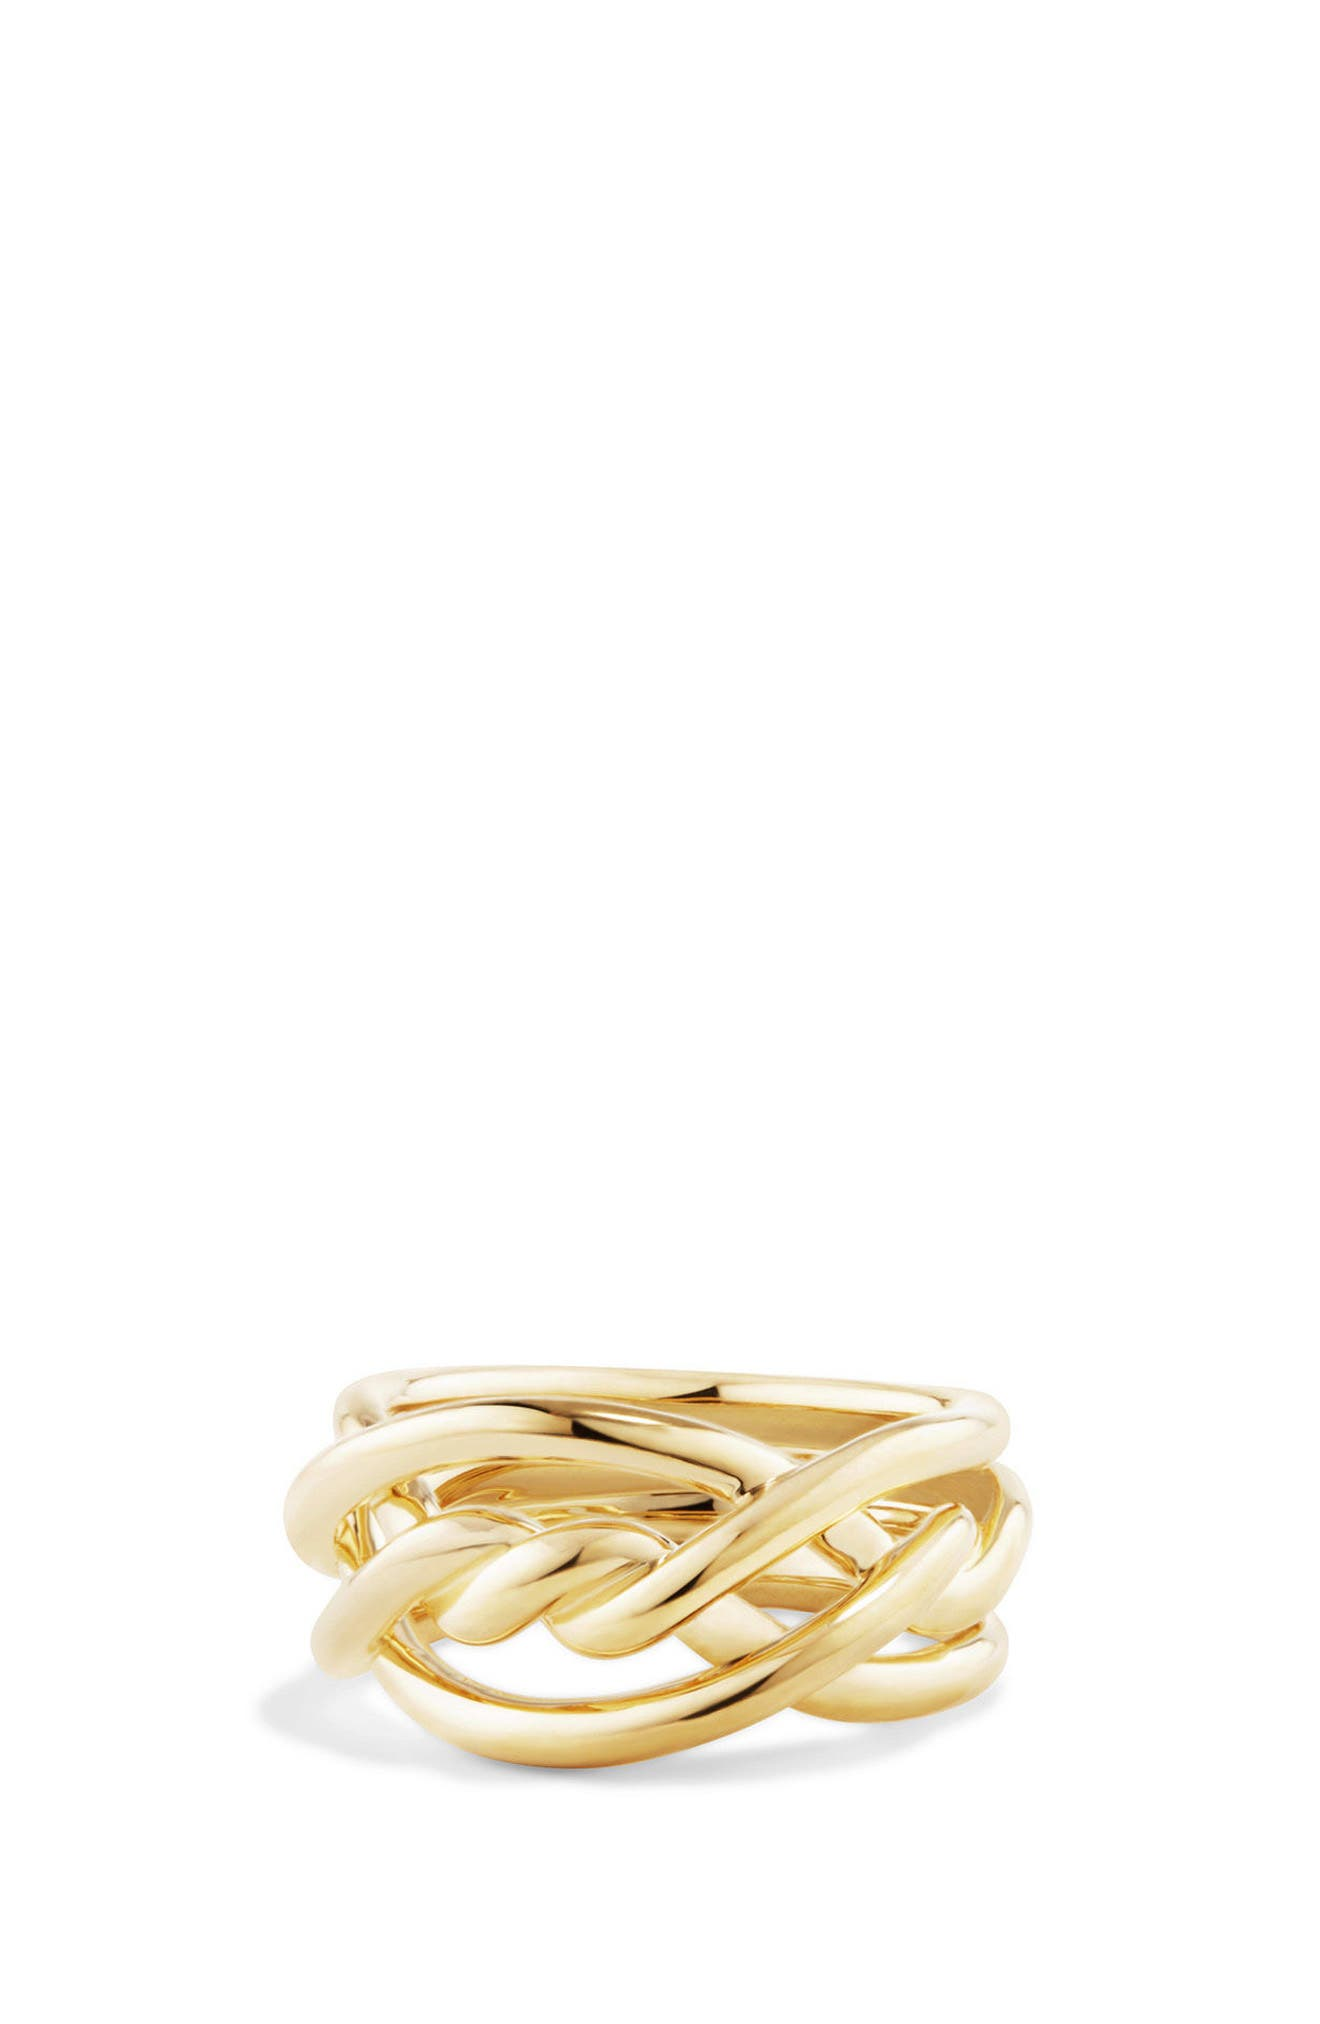 Alternate Image 1 Selected - David Yurman Continuance Ring in 18K Gold